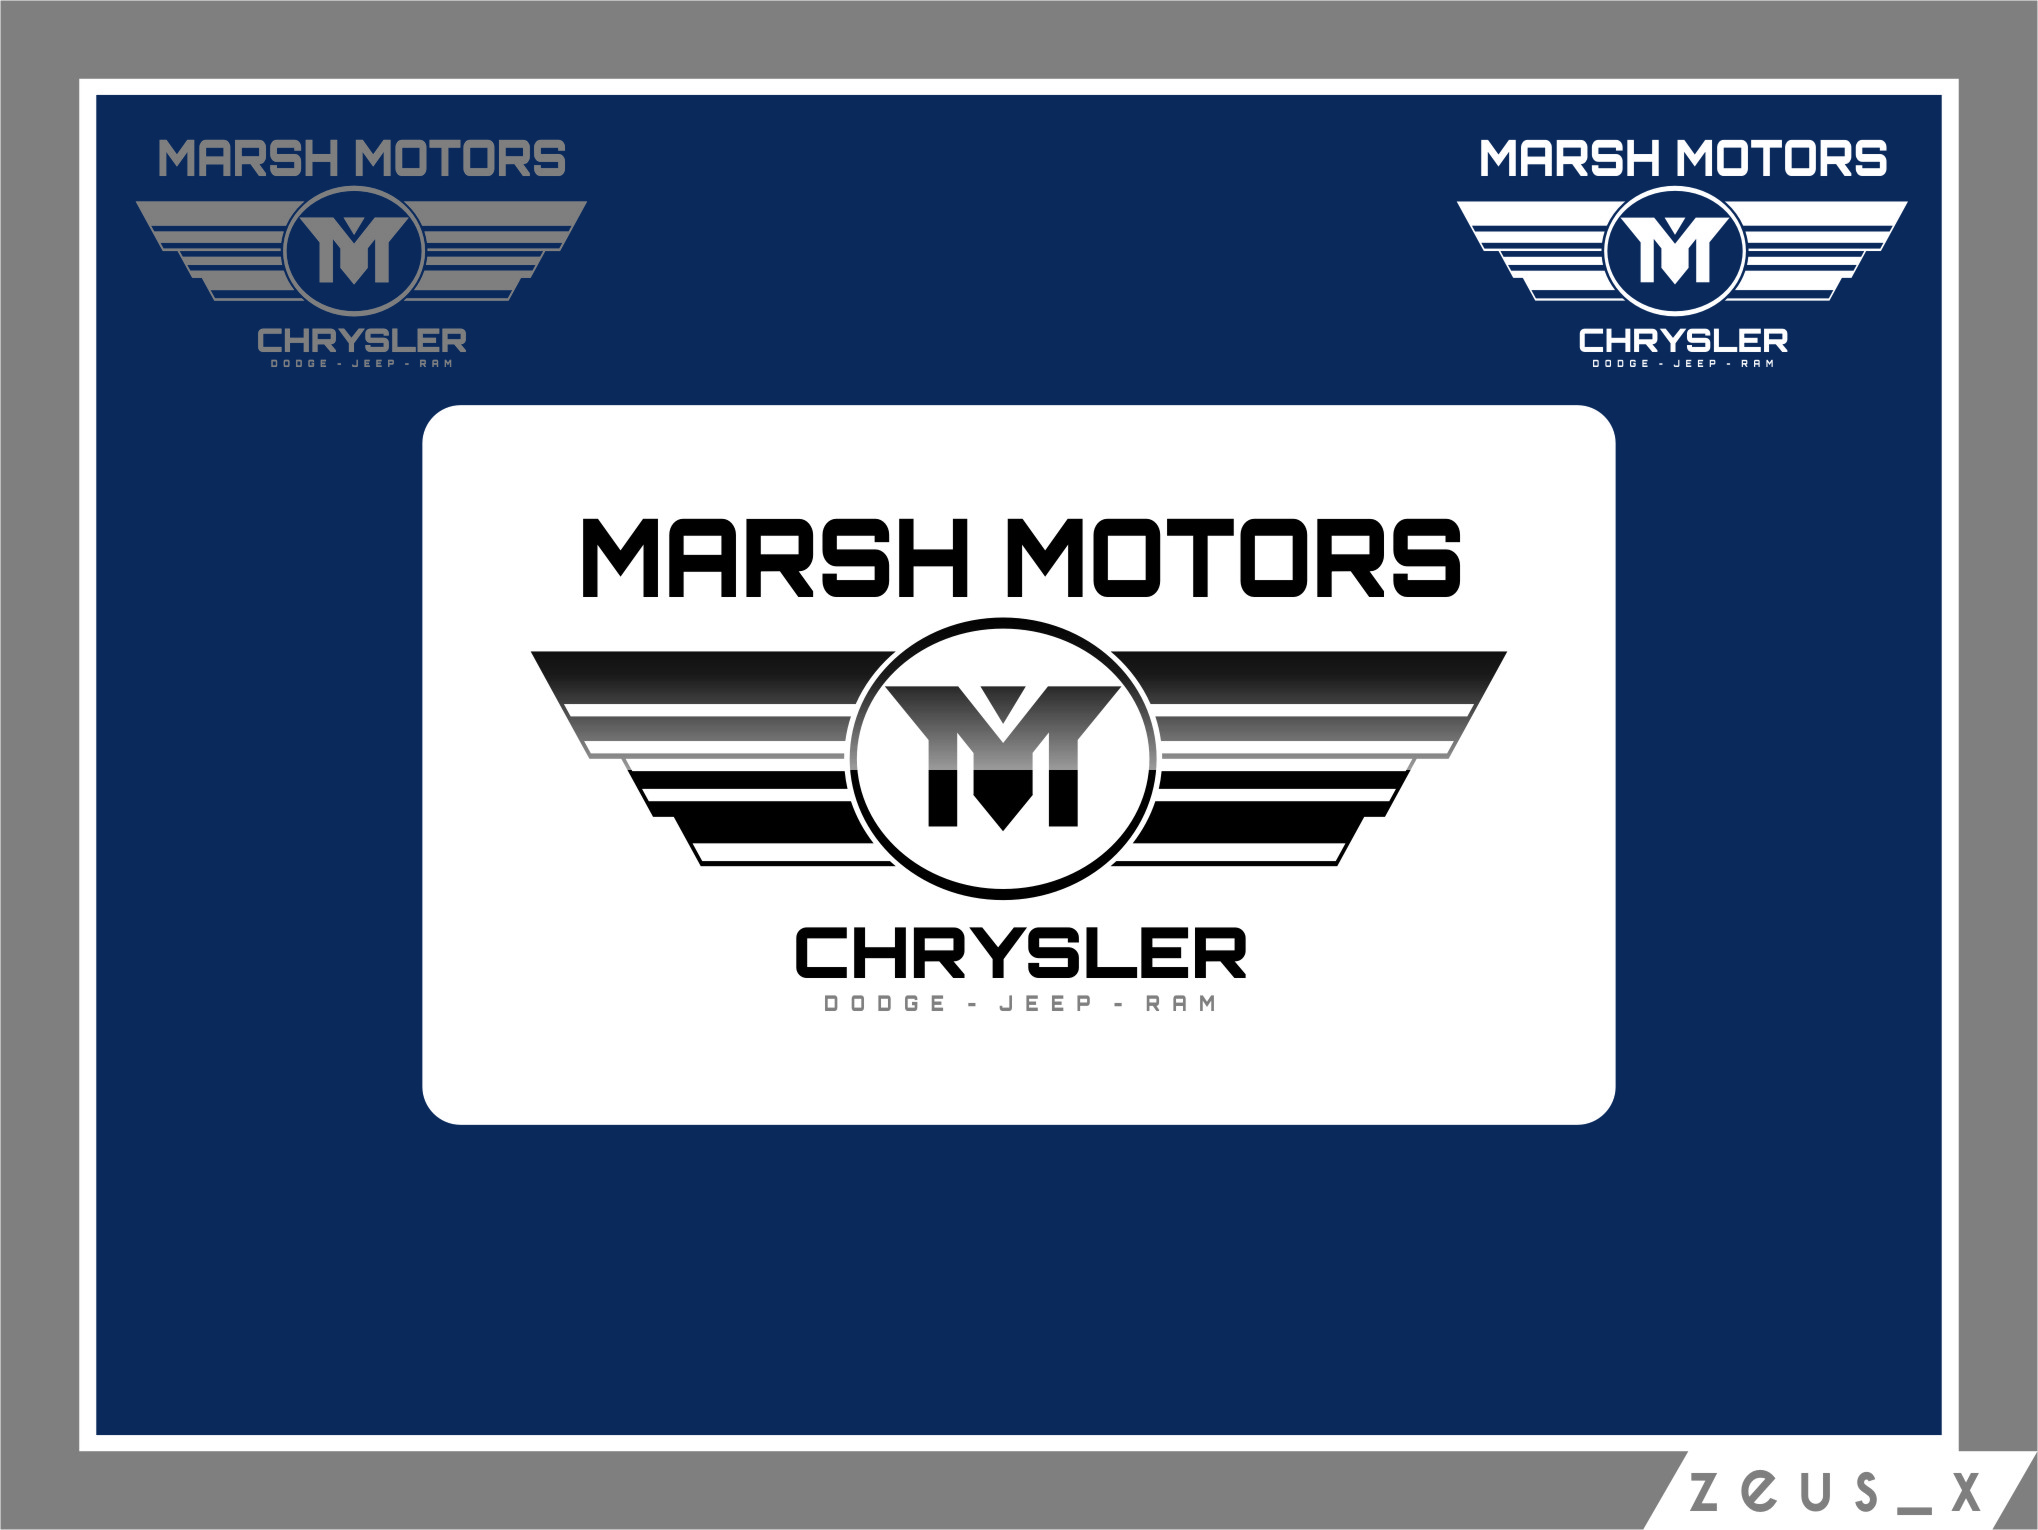 Logo Design by RasYa Muhammad Athaya - Entry No. 61 in the Logo Design Contest Marsh Motors Chrysler Logo Design.